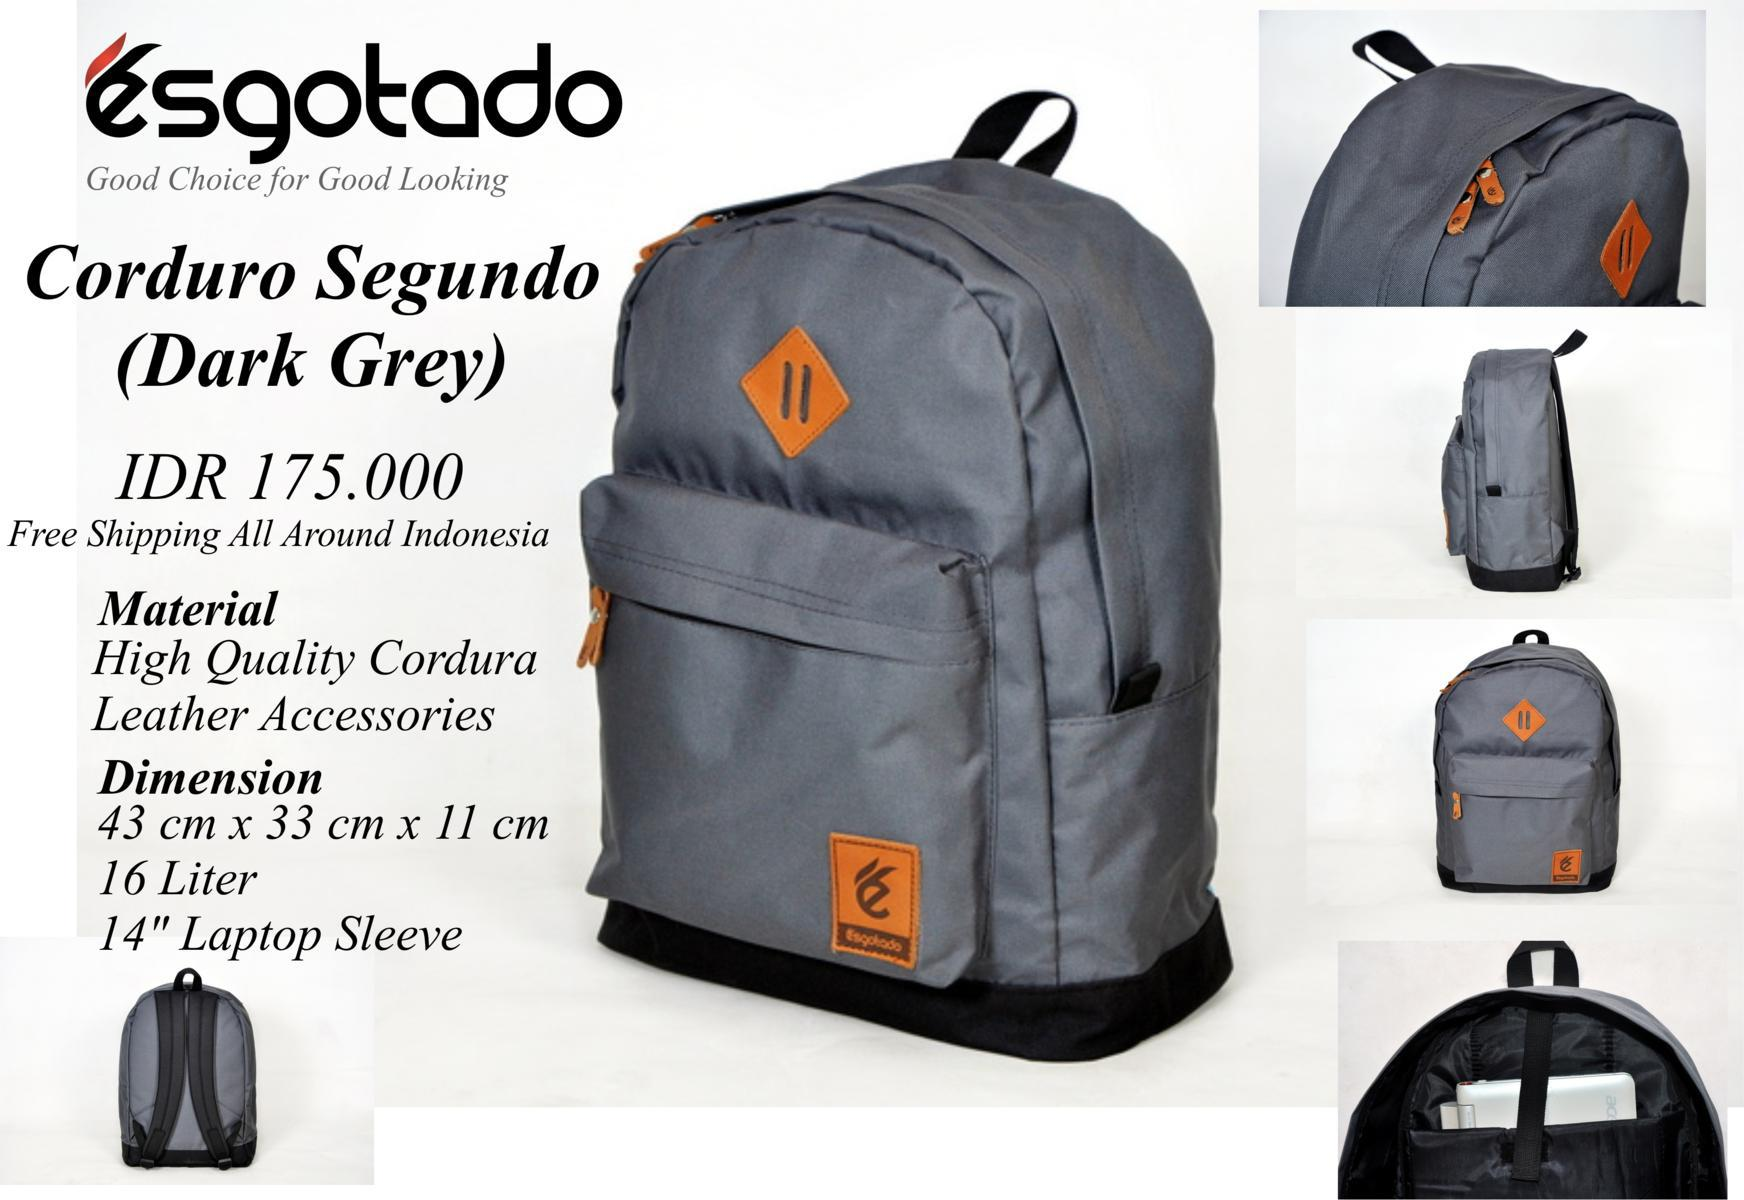 CORDURO SEGUNDO DARK GREY